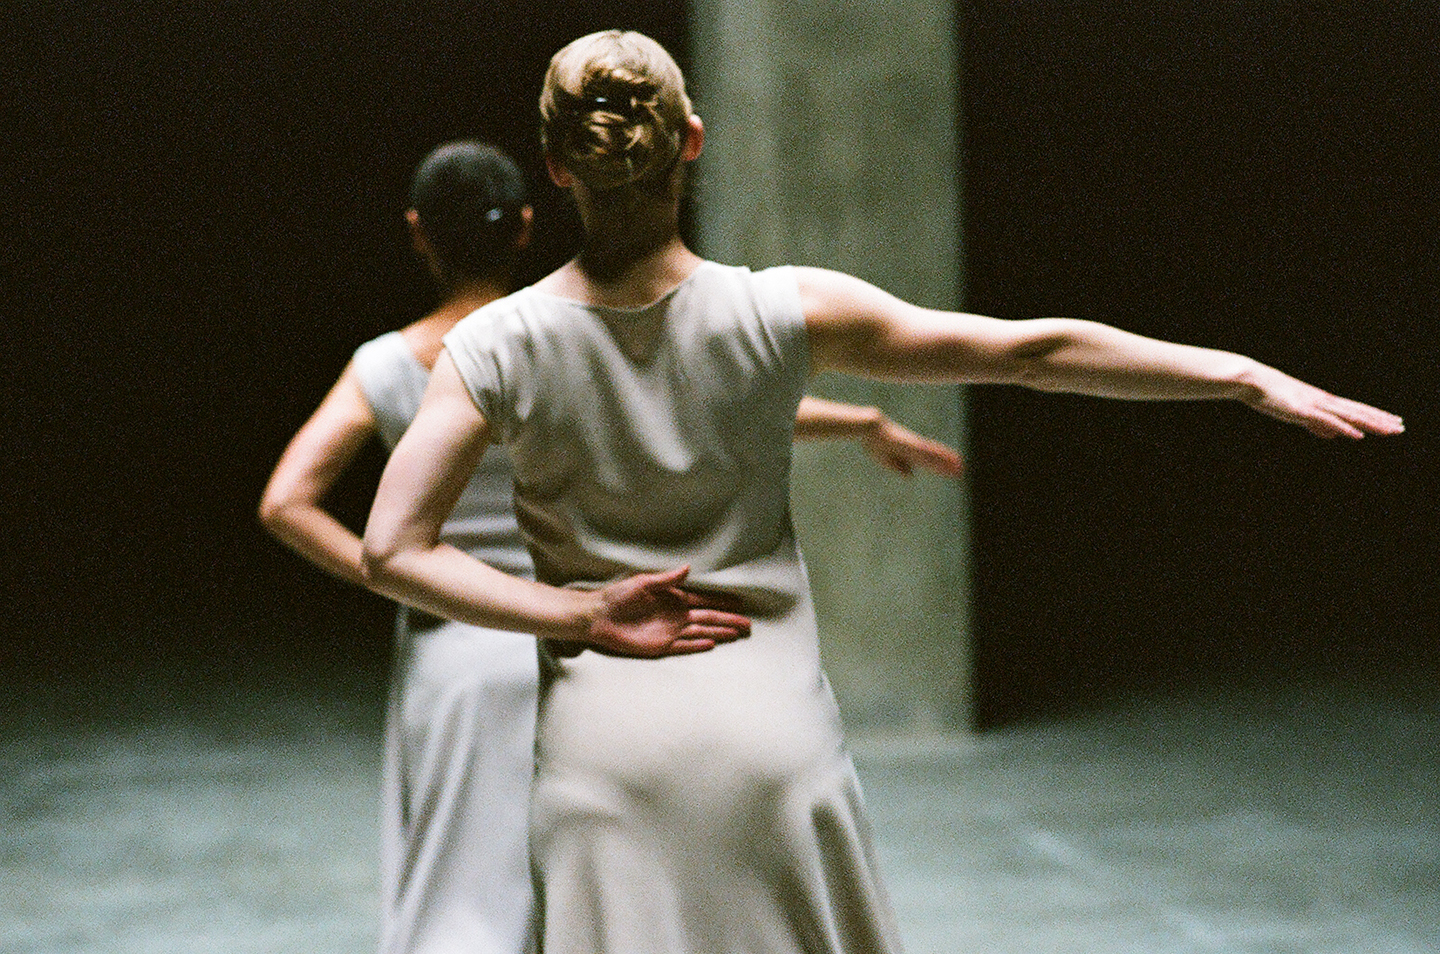 Anne Teresa de Keersmaeker, Fase, Four Movements to the Music of Steve Reich, Tate Modern, 2012. Photo: Anne Van Aerschot